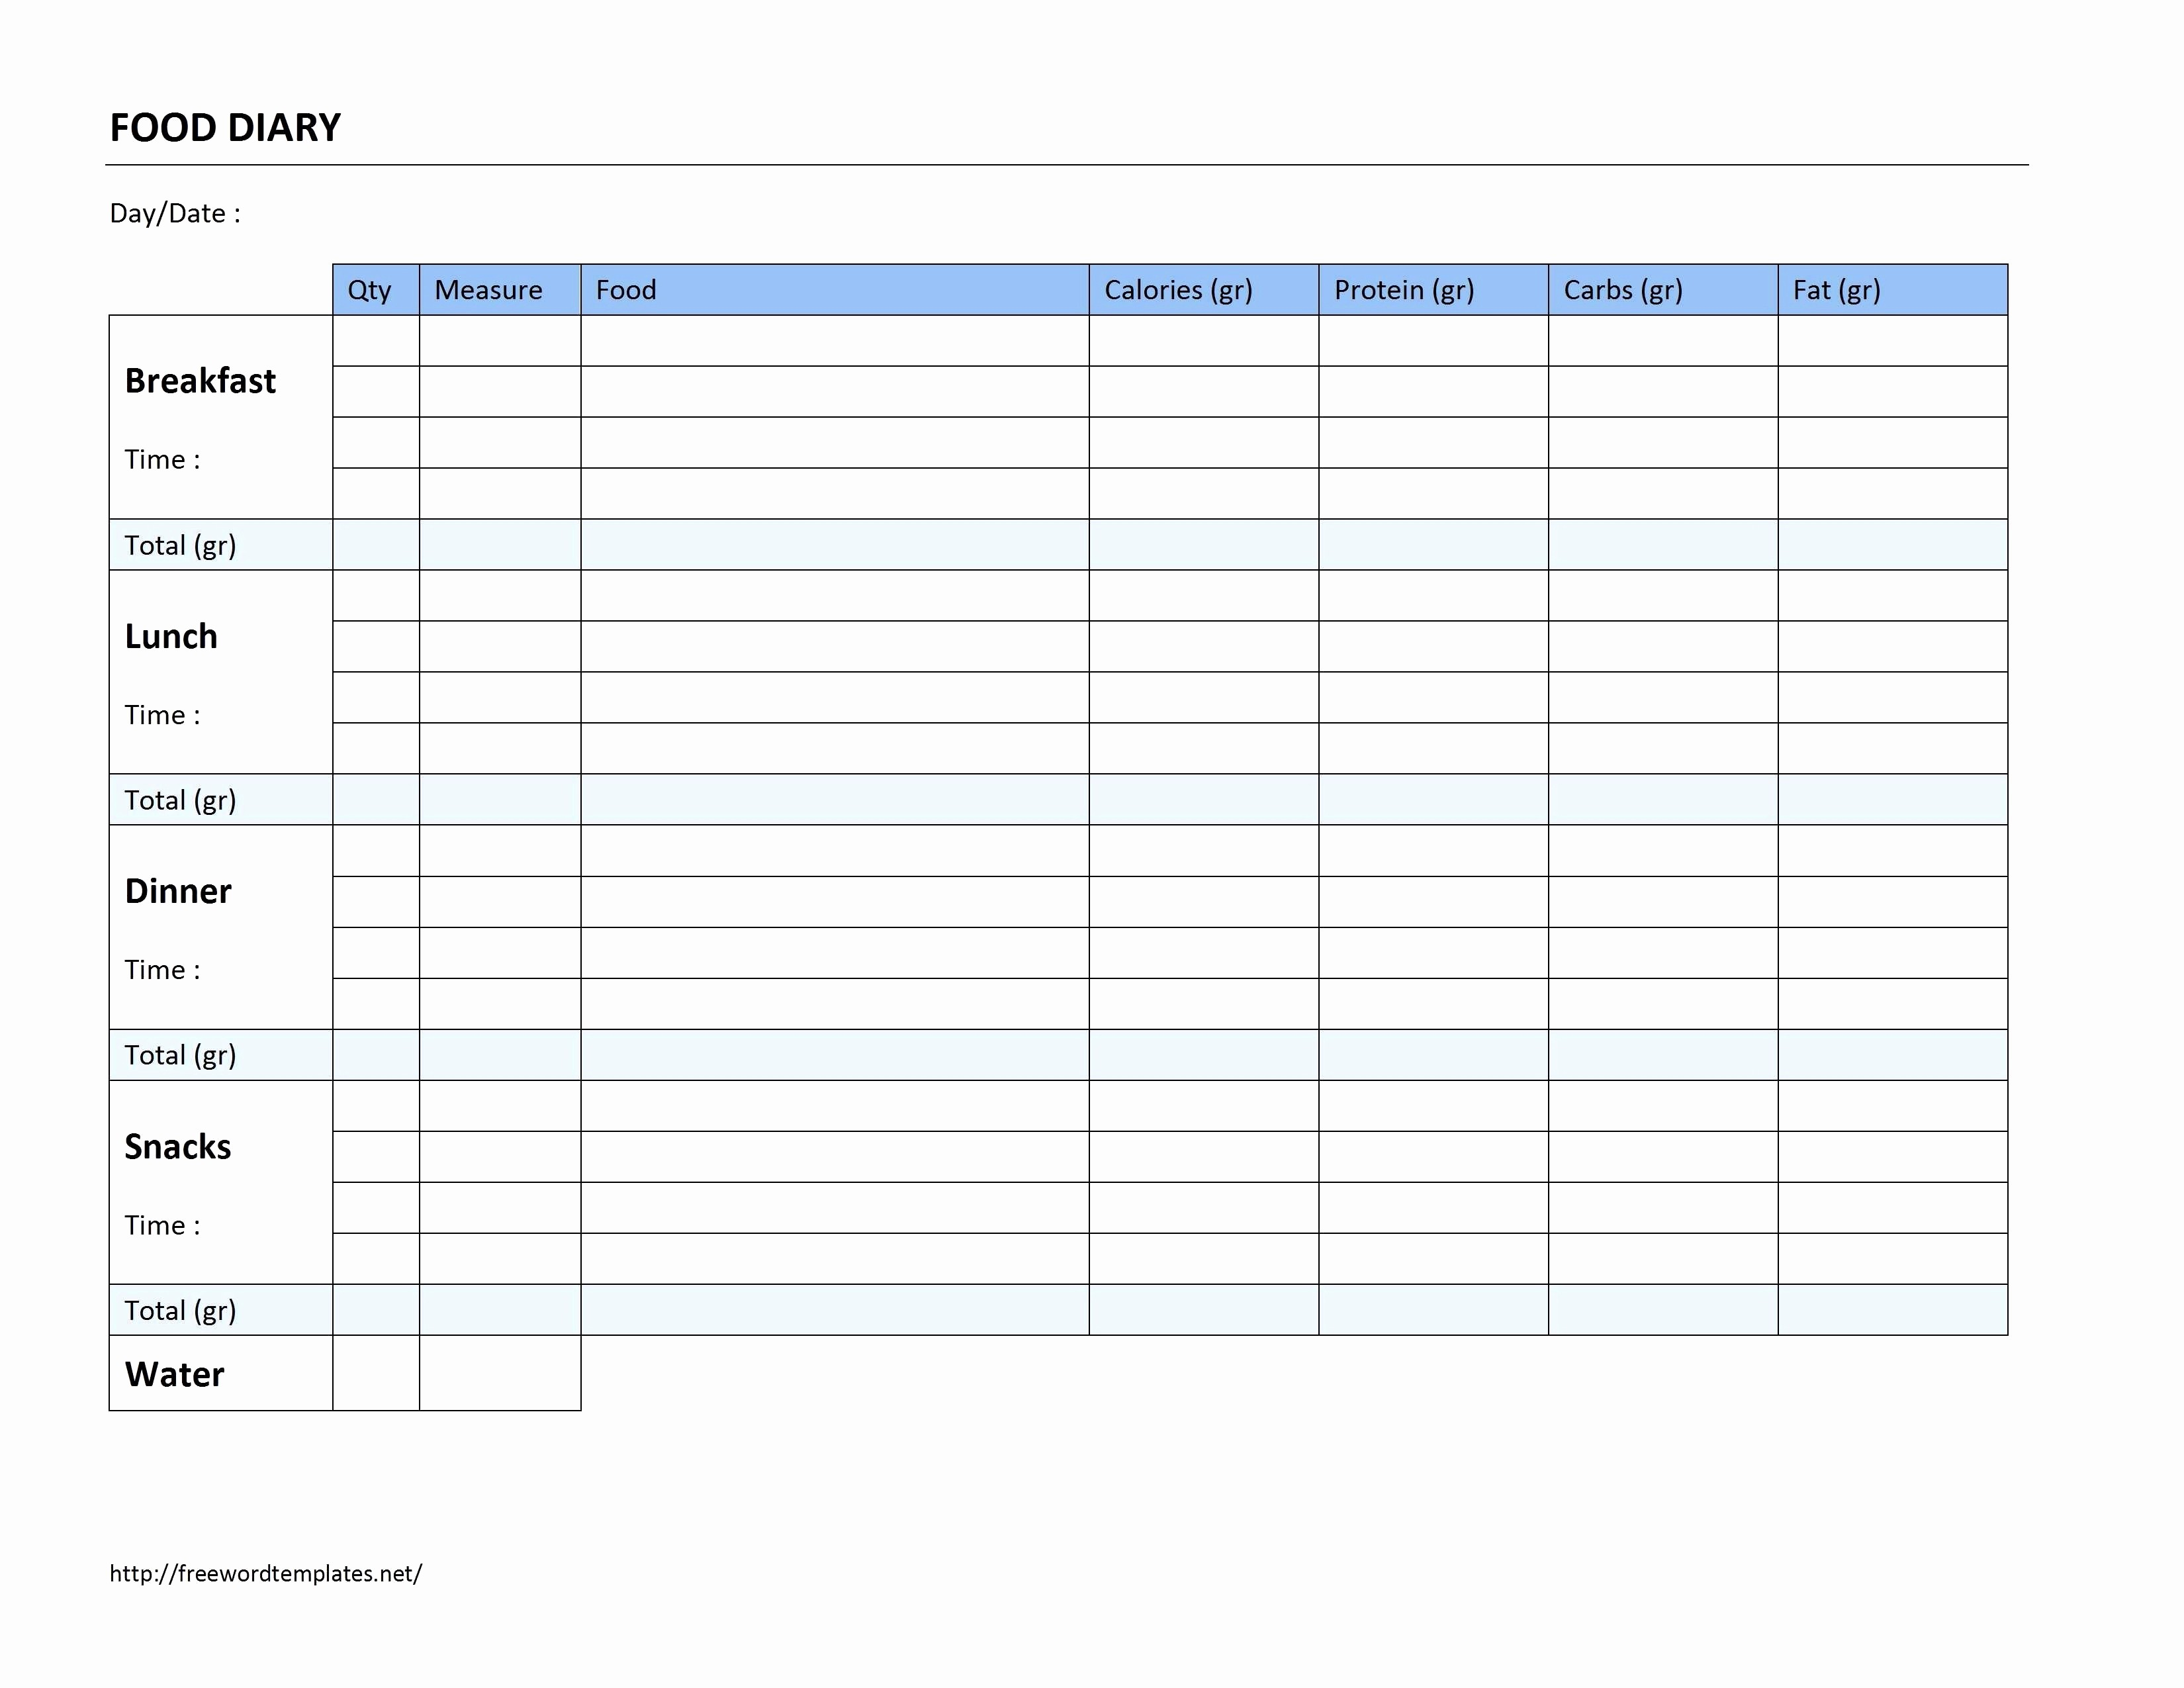 Weight Loss Tracker Excel Spreadsheet Fresh Free Weight Loss Tracker Spreadsheet